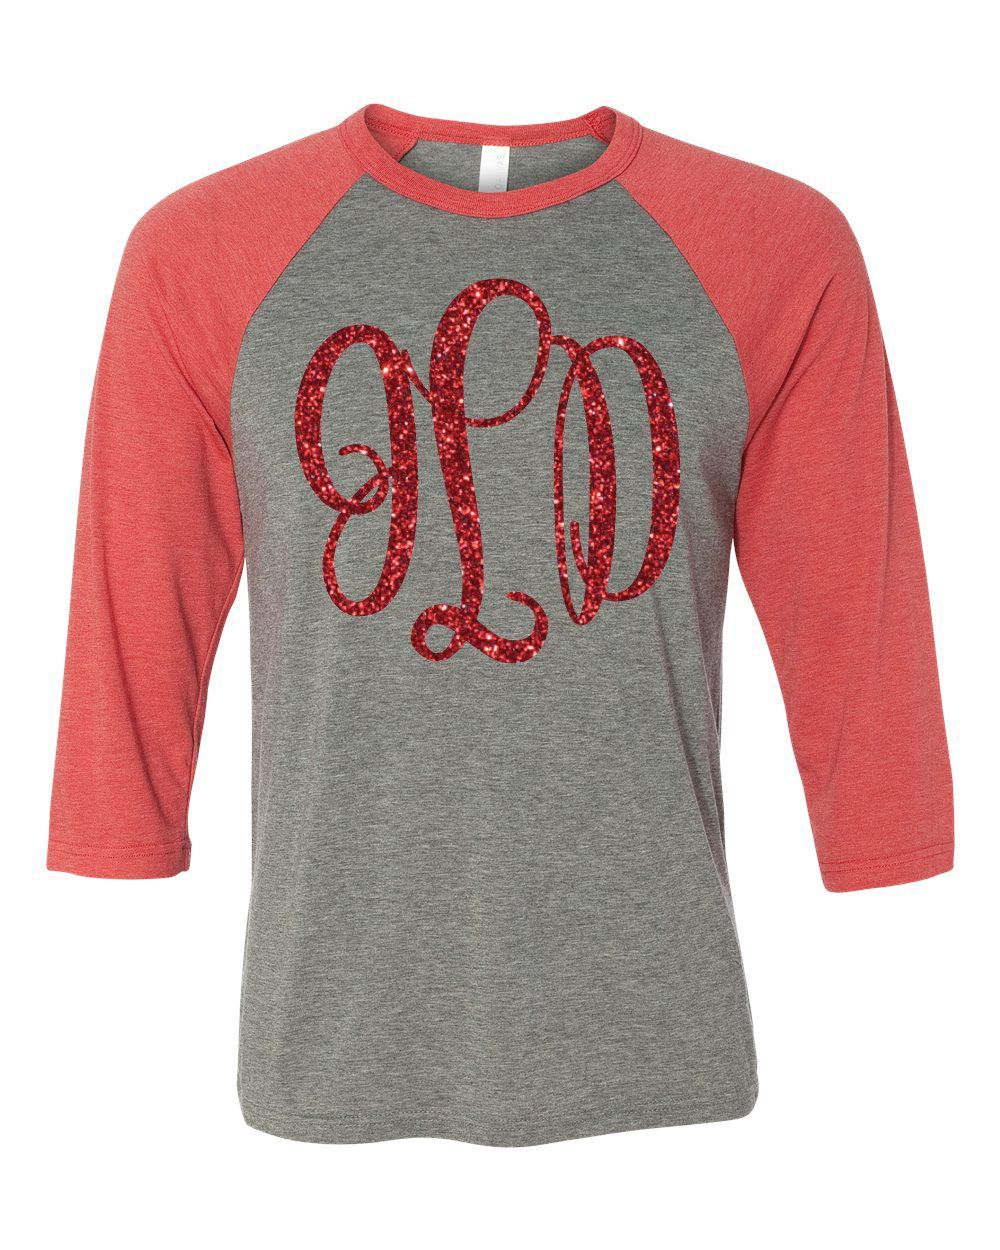 Includes Monogram On The Front Of Garment In Your Choice Of 24 Glitter Colors Monograms Are Great But In Glitter Baseball Monogram Monogram Shirts Monogram